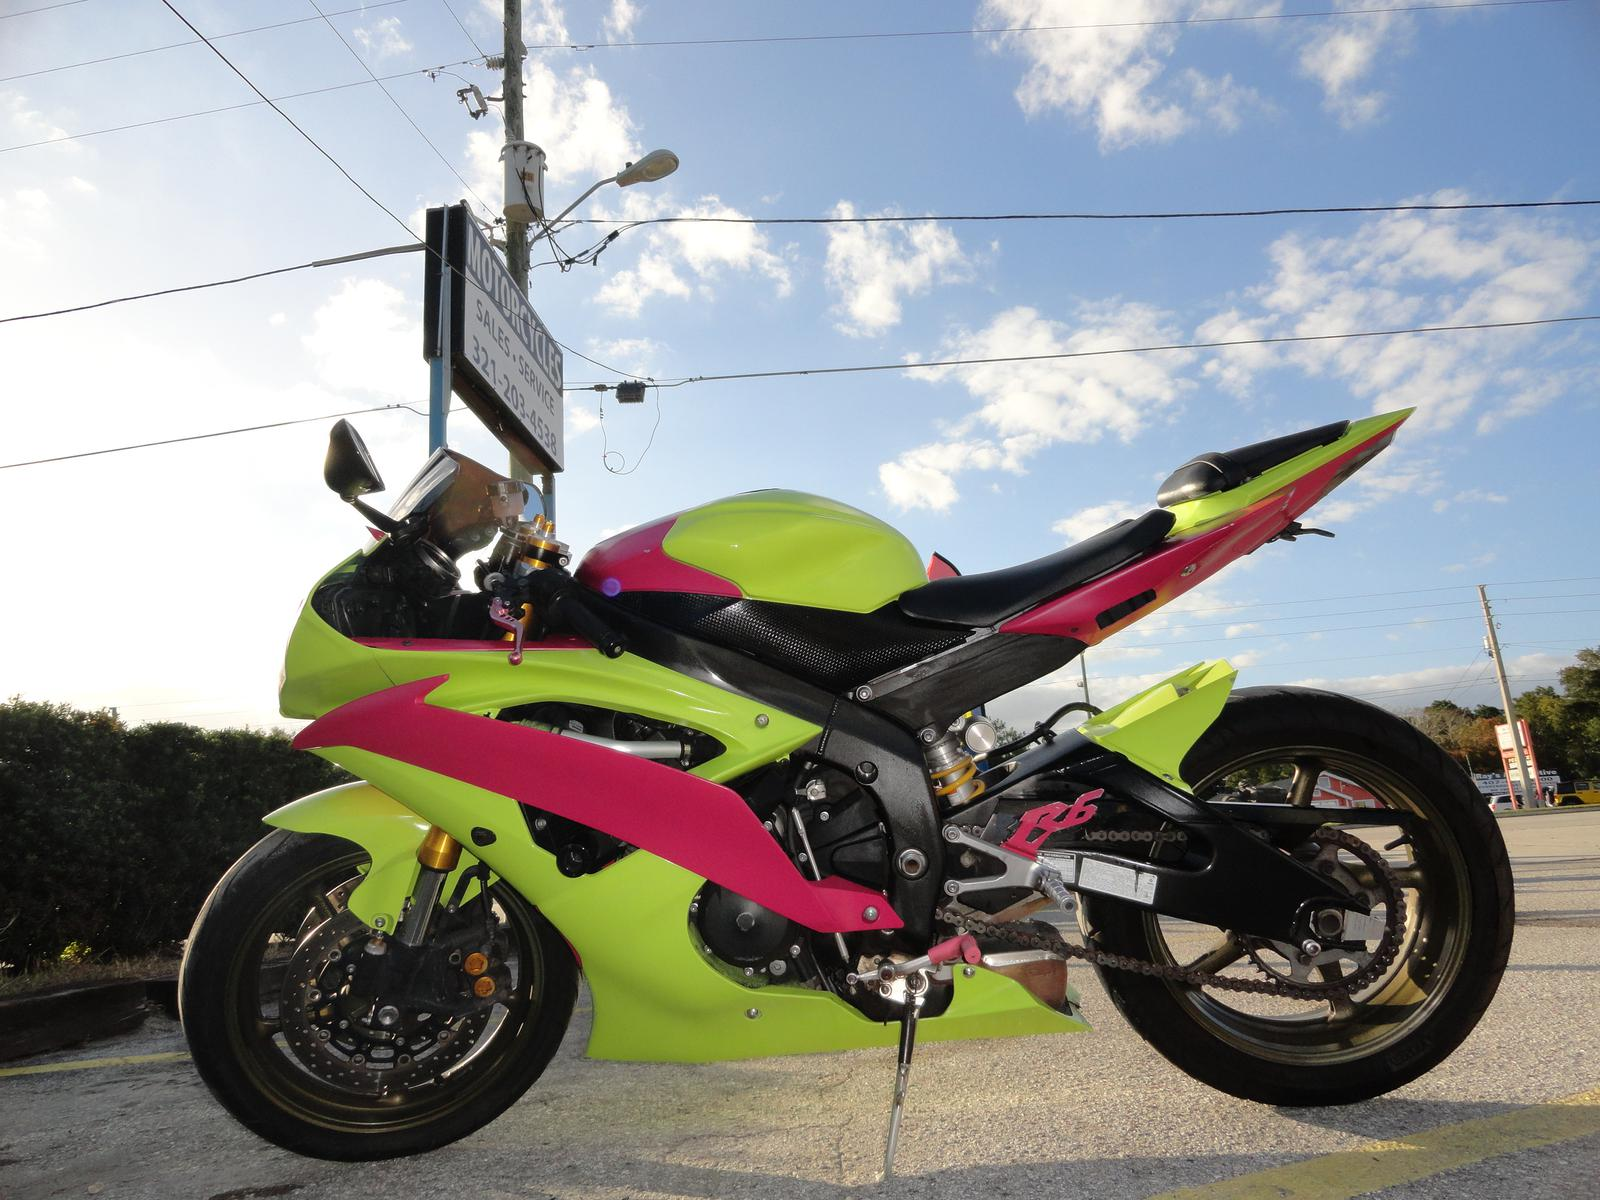 2008 yamaha yzf r6 for sale in longwood fl prime motorcycles